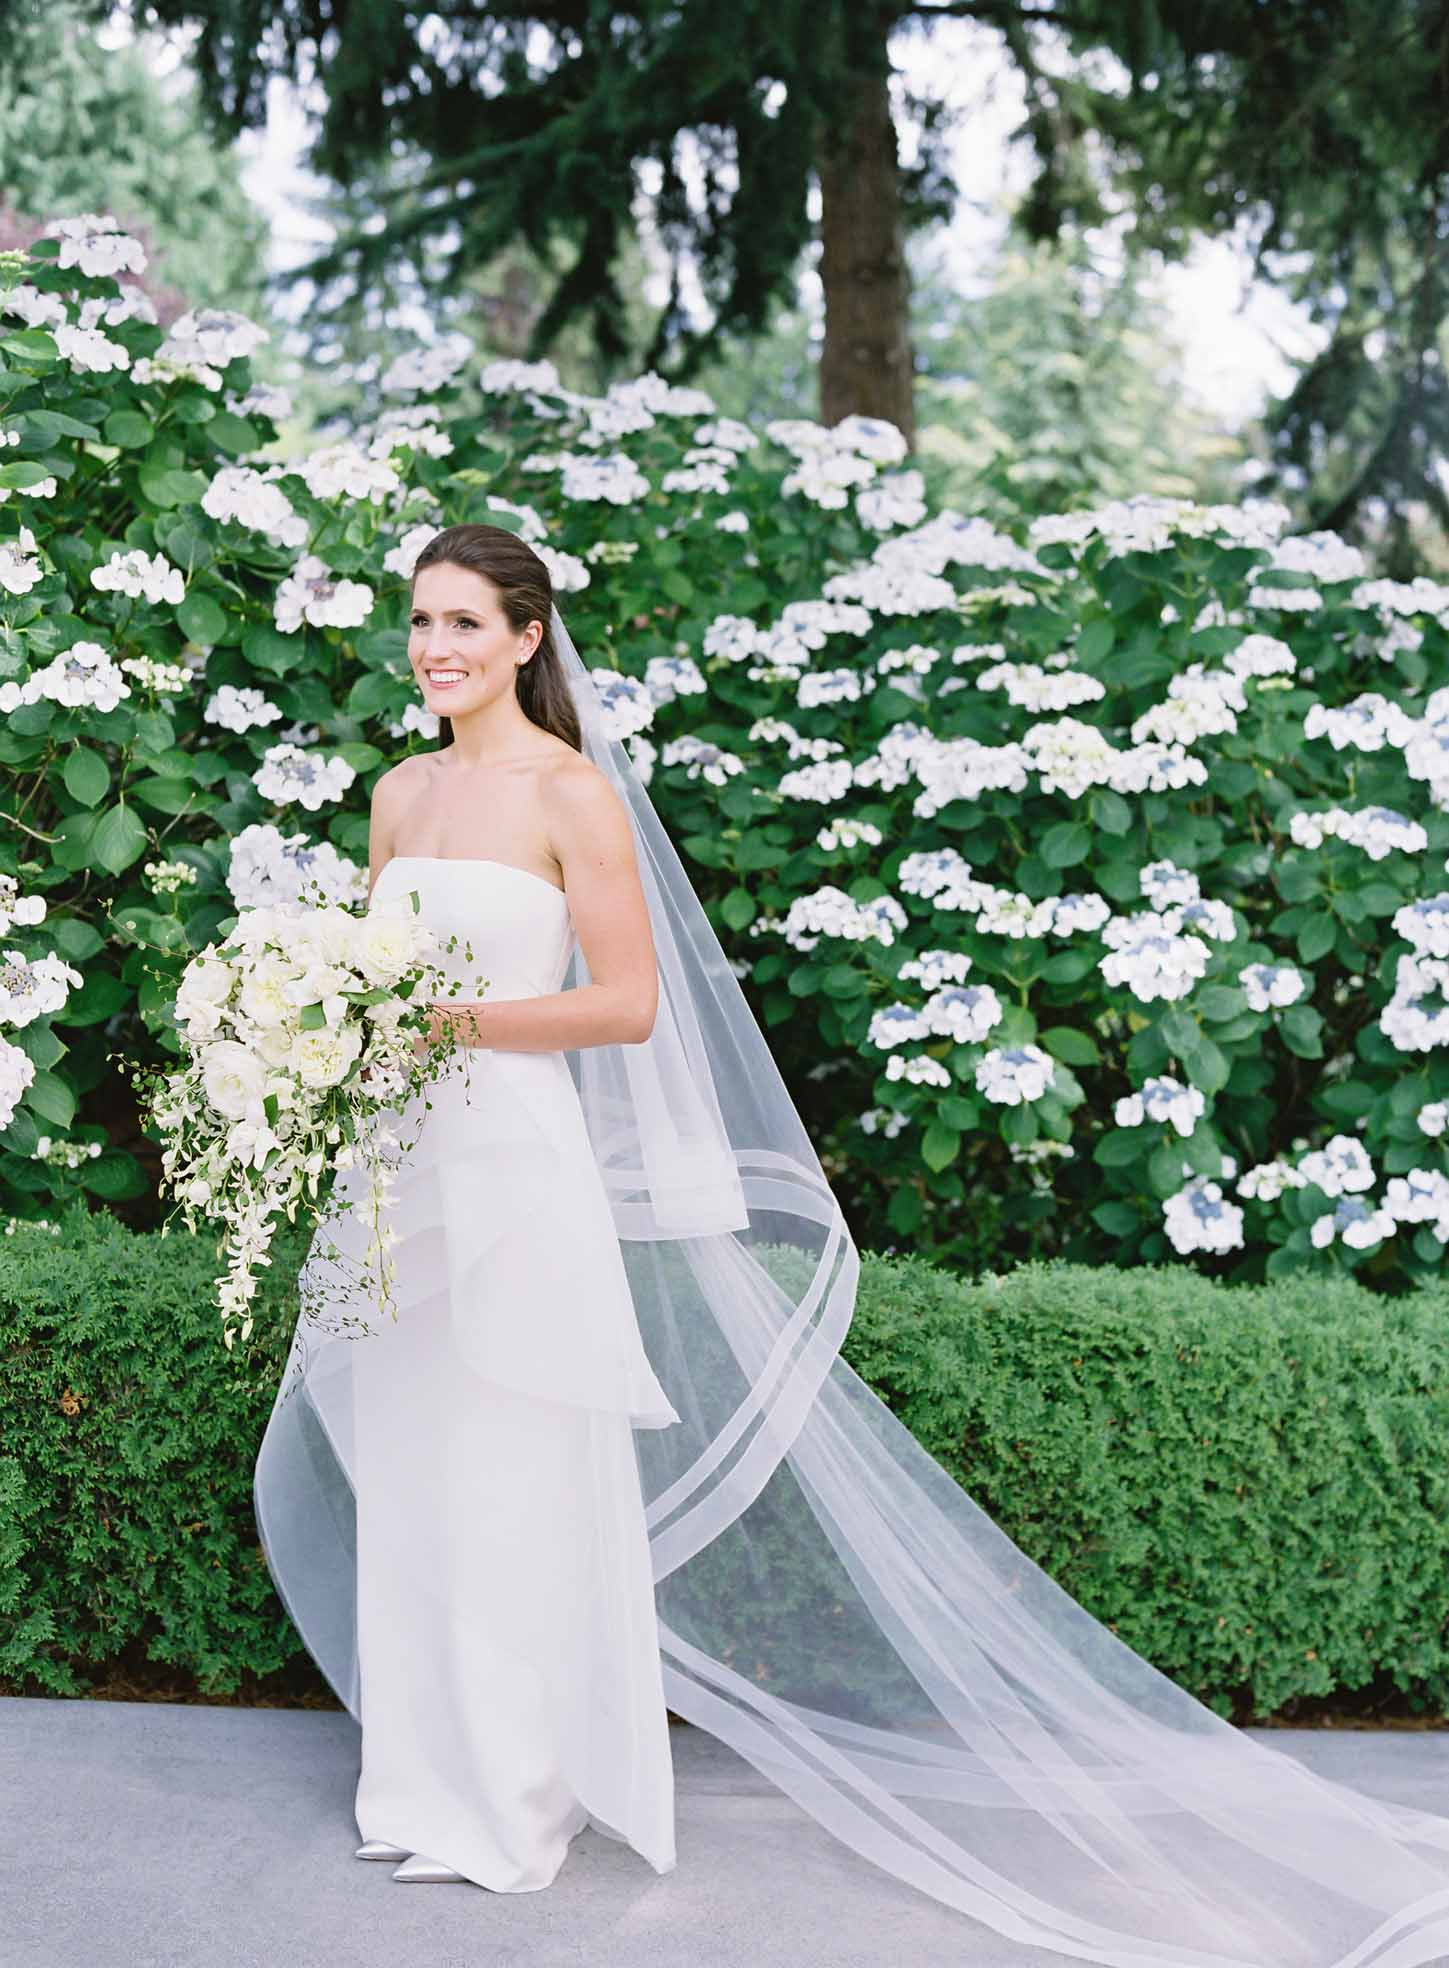 Bride holding a Wedding couple surrounded by greenery in garden, bride holding a cascading bouquet of white flowers with greenery